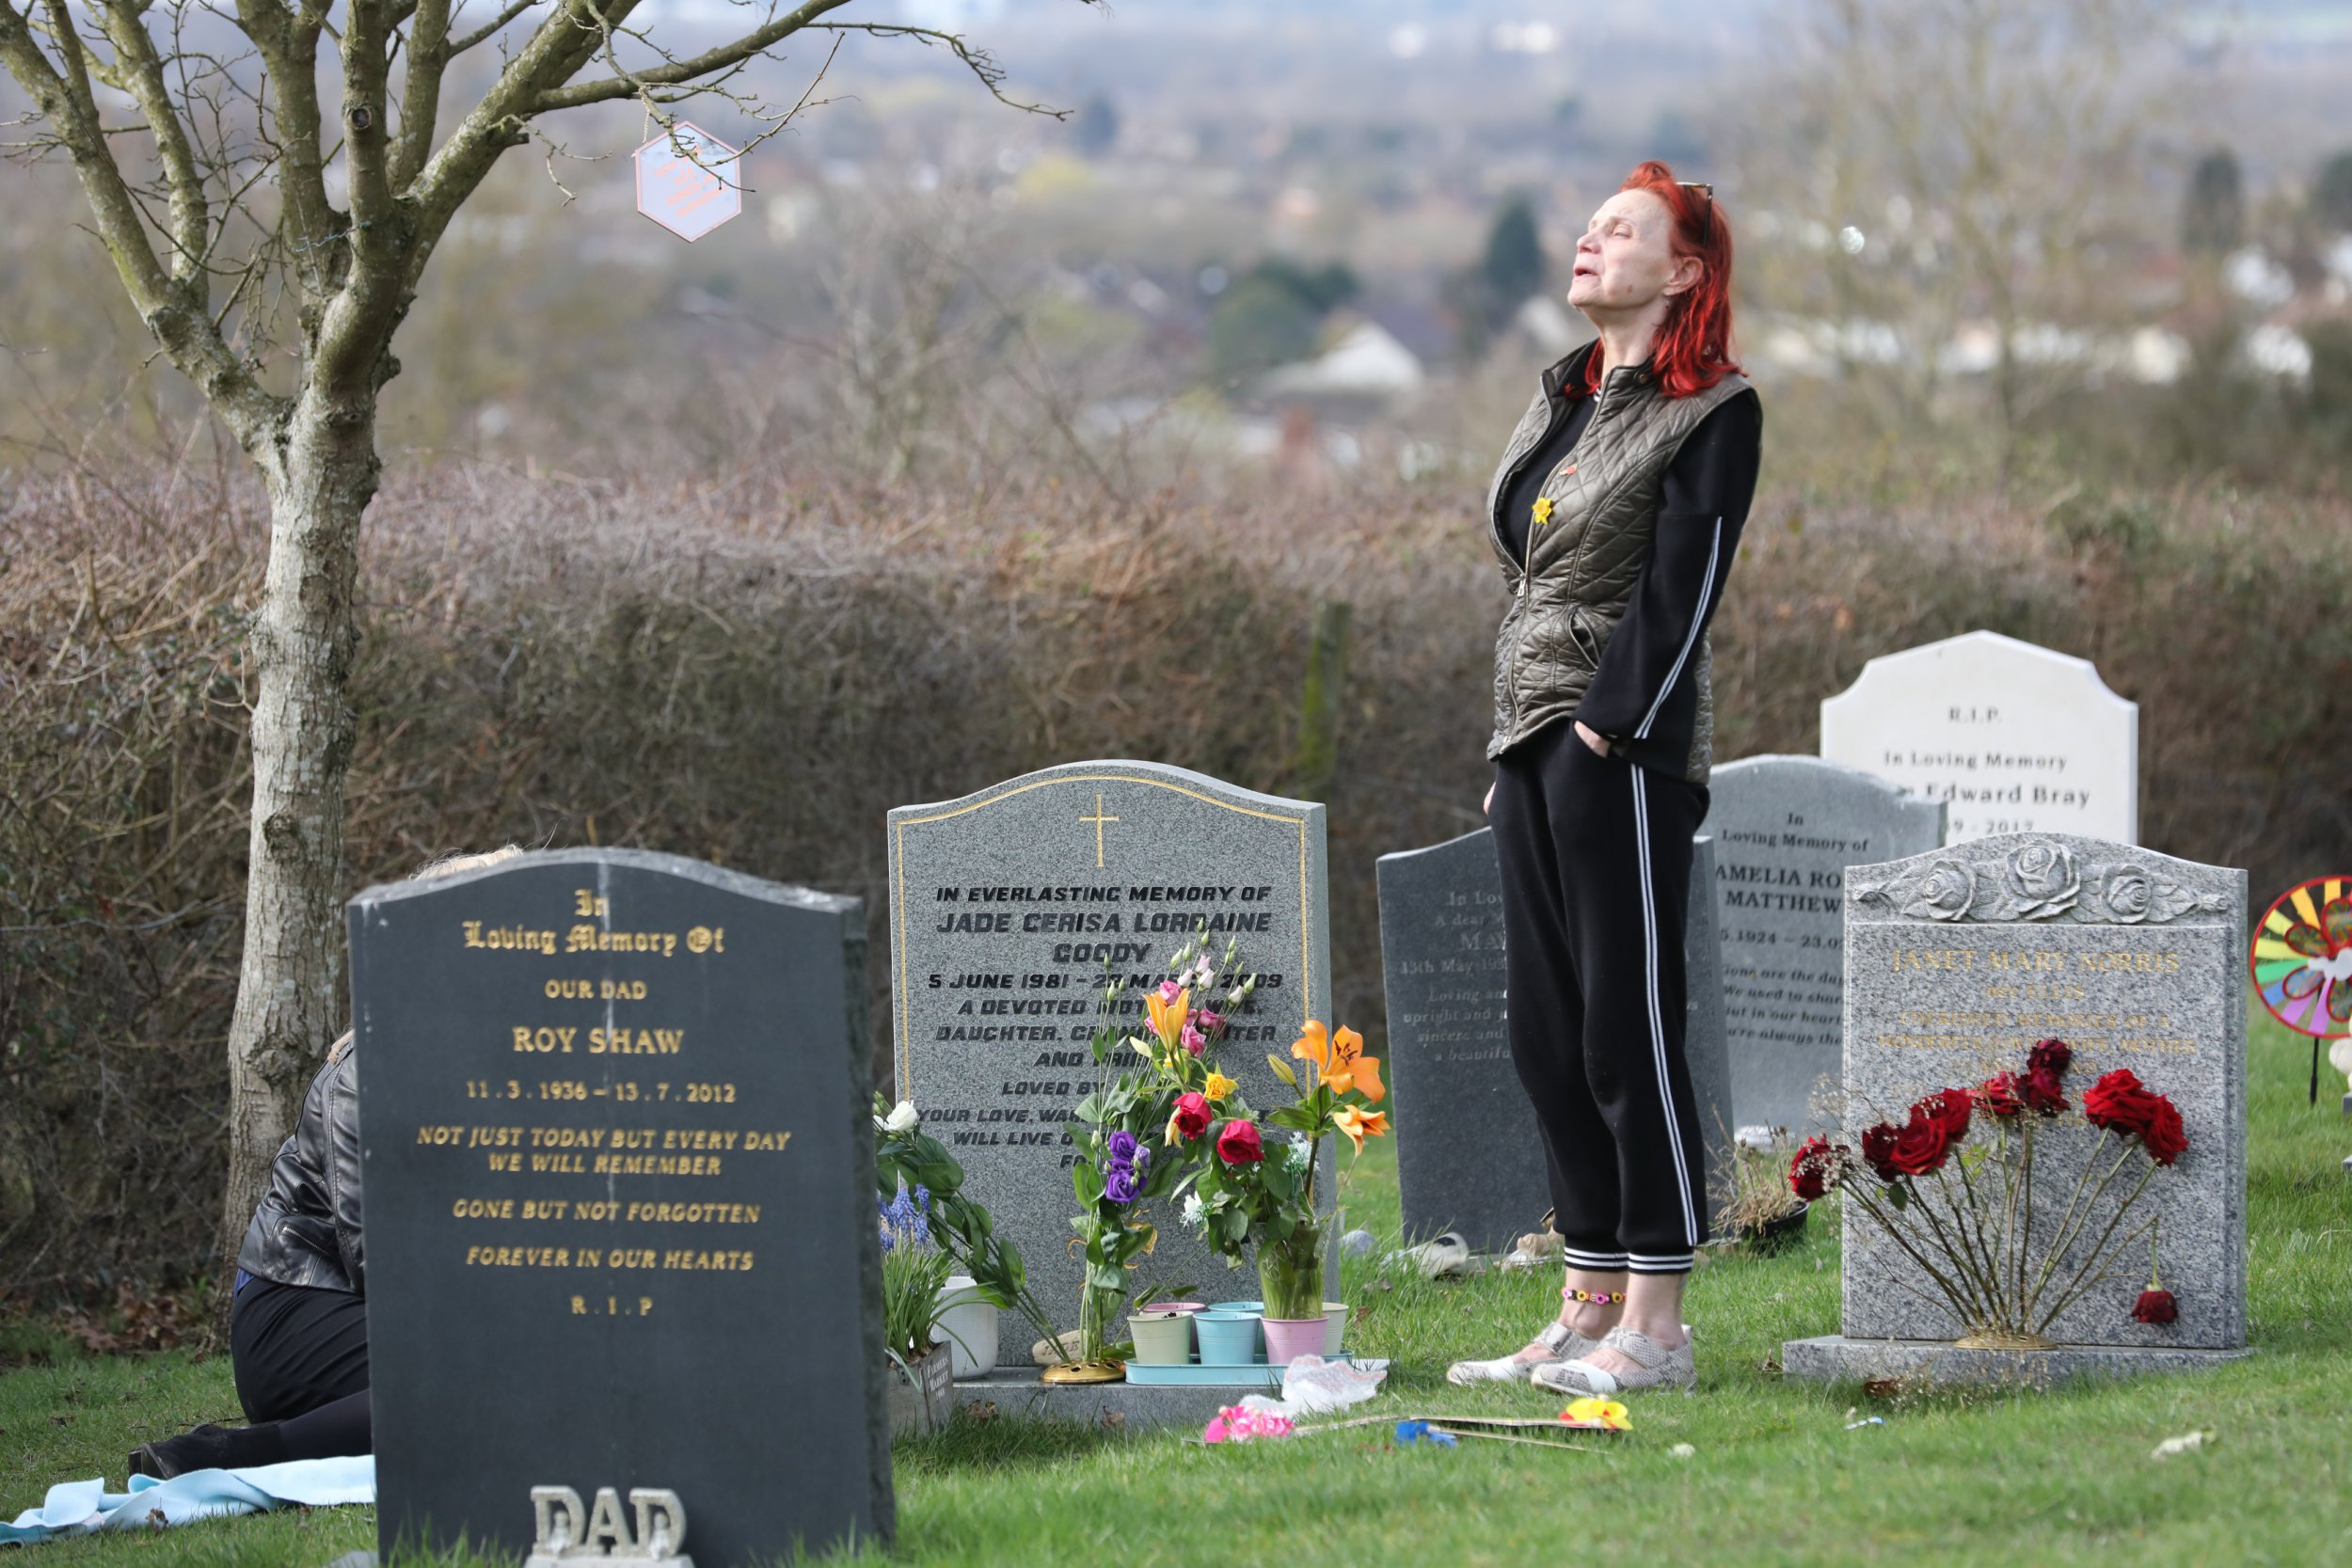 EXCLUSIVE: * EMBARGO: Strictly No Web / Online Permitted Before 11pm March 18th 2019 * Fee For Online After 11pm 300 GBP For Set * * Min Print Fee 300 GBP PP * Larger Usages To be Agreed *Double Pg 1 * Jackiey Budden visits daughter Jade's grave in Upshire, Essex The 22nd March 2019 will be the 10th anniversary of Jade's death. Pictured: Jackiey Budden Ref: SPL5069839 050319 EXCLUSIVE Picture by: SplashNews.com * EMBARGO: Strictly No Web / Online Permitted Before 11pm March 18th 2019 * Fee For Online After 11pm 300 GBP For Set * * Min Print Fee 300 GBP PP * Larger Usages To be Agreed *Double Pg 1 * Splash News and Pictures Los Angeles: 310-821-2666 New York: 212-619-2666 London: 0207 644 7656 Milan: 02 4399 8577 photodesk@splashnews.com World Rights